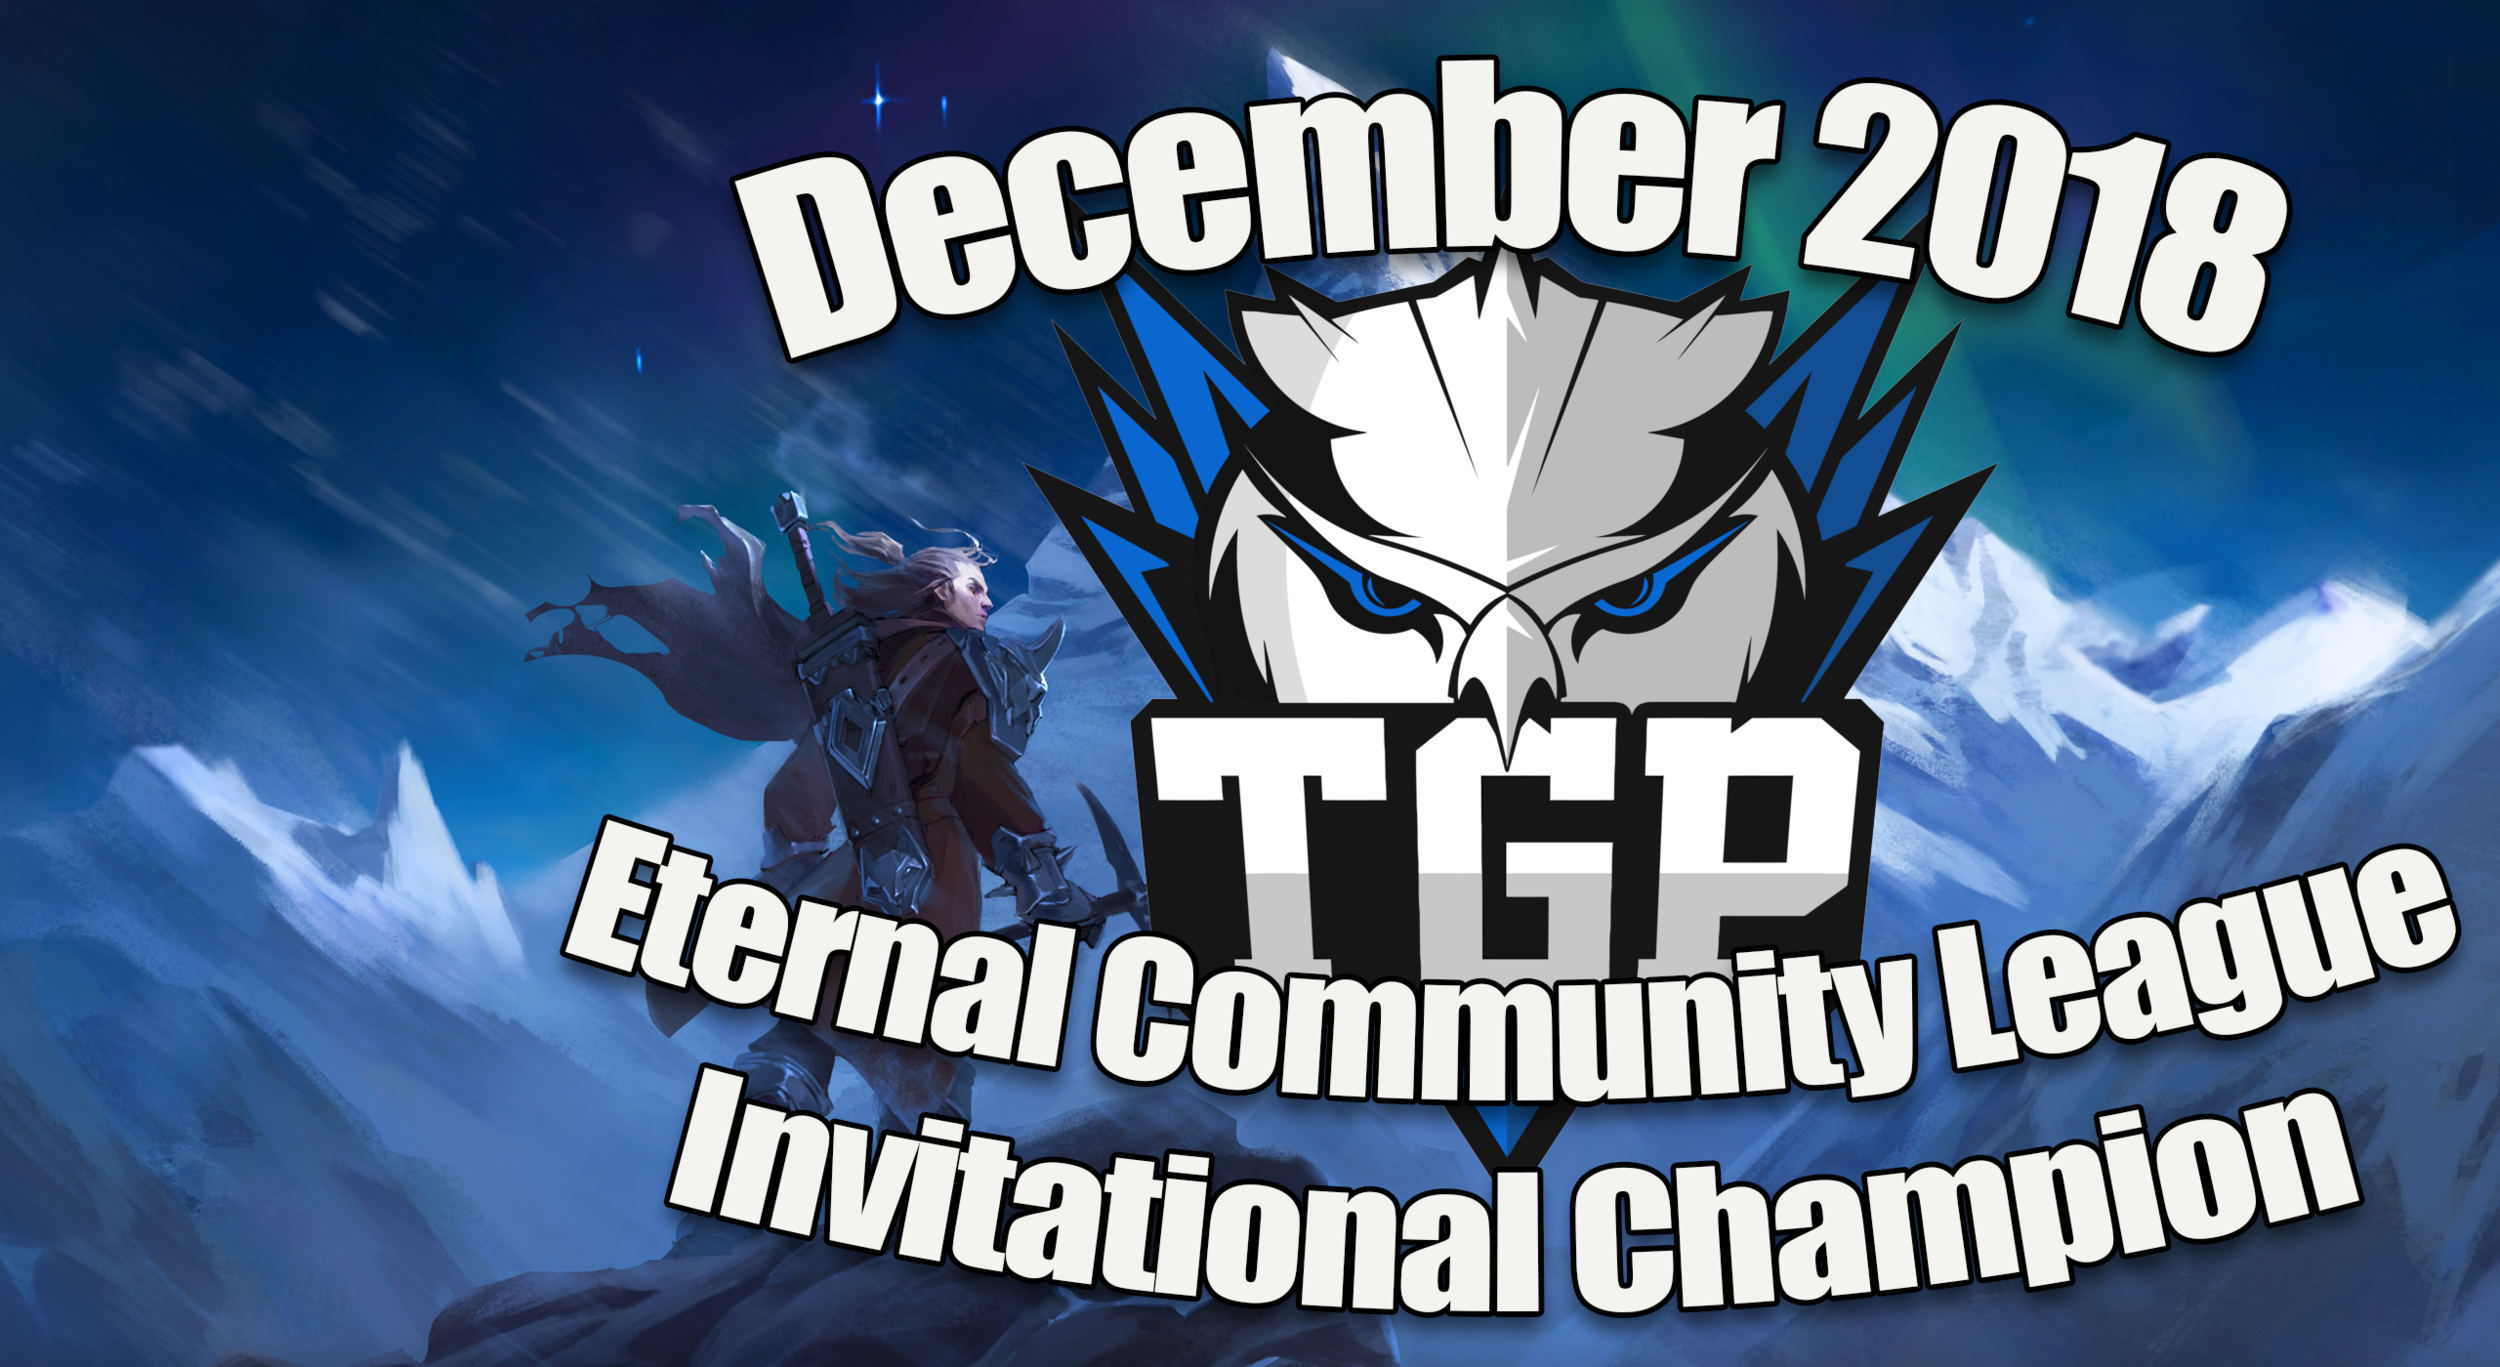 December 2018 Invitational Champion - Meet reireibarker, invitational champion!Article - reireibarker - January 14, 2019